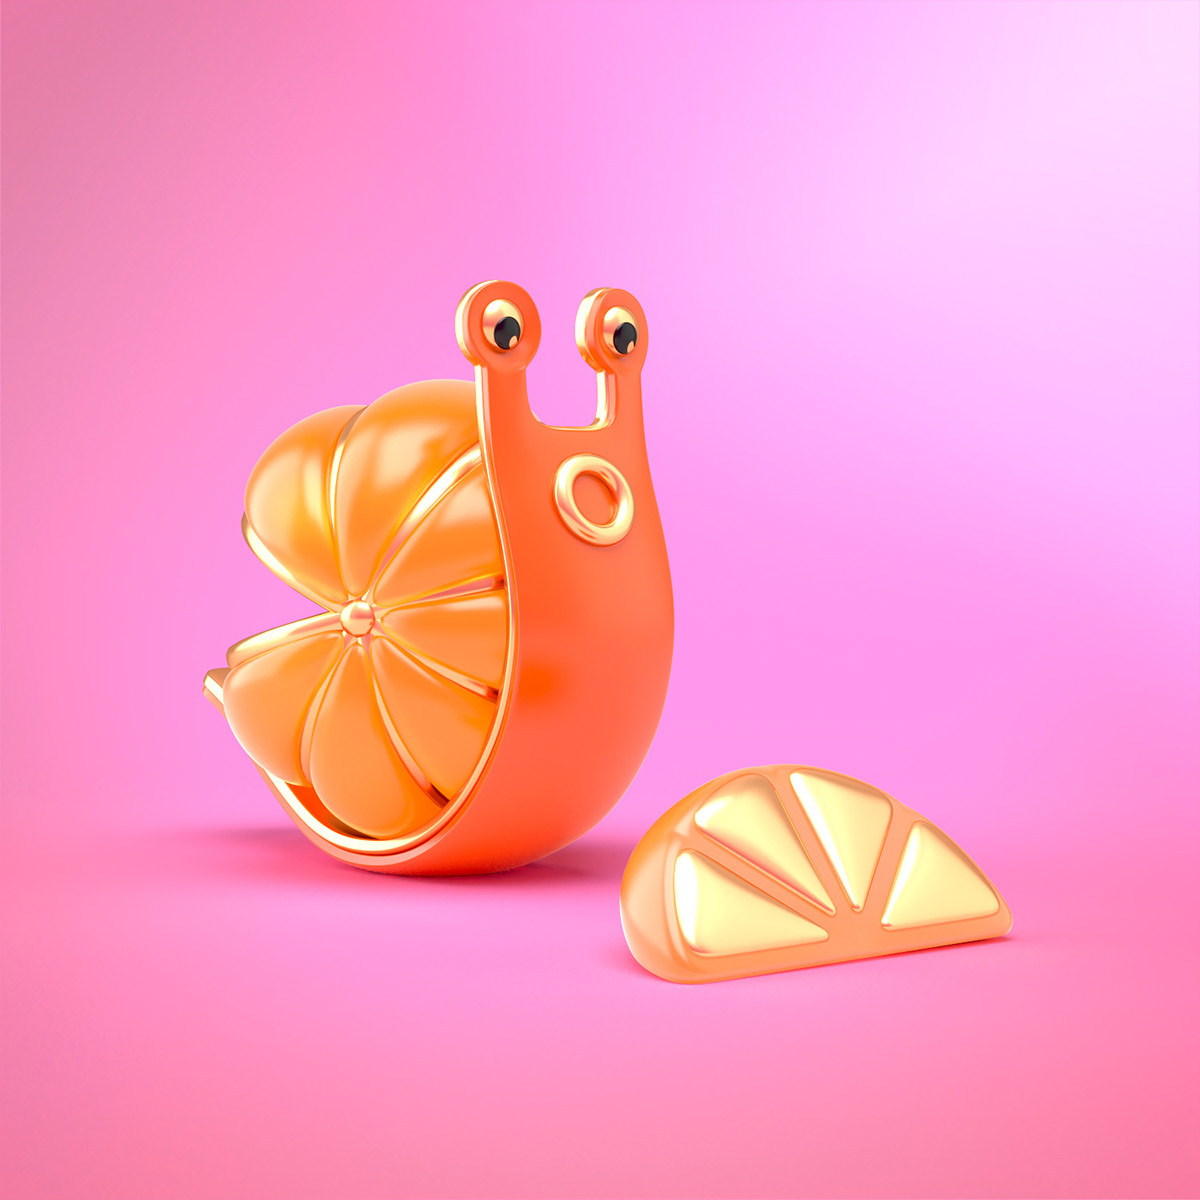 3D & Amazing Character Design Inspiration by Nikopicto